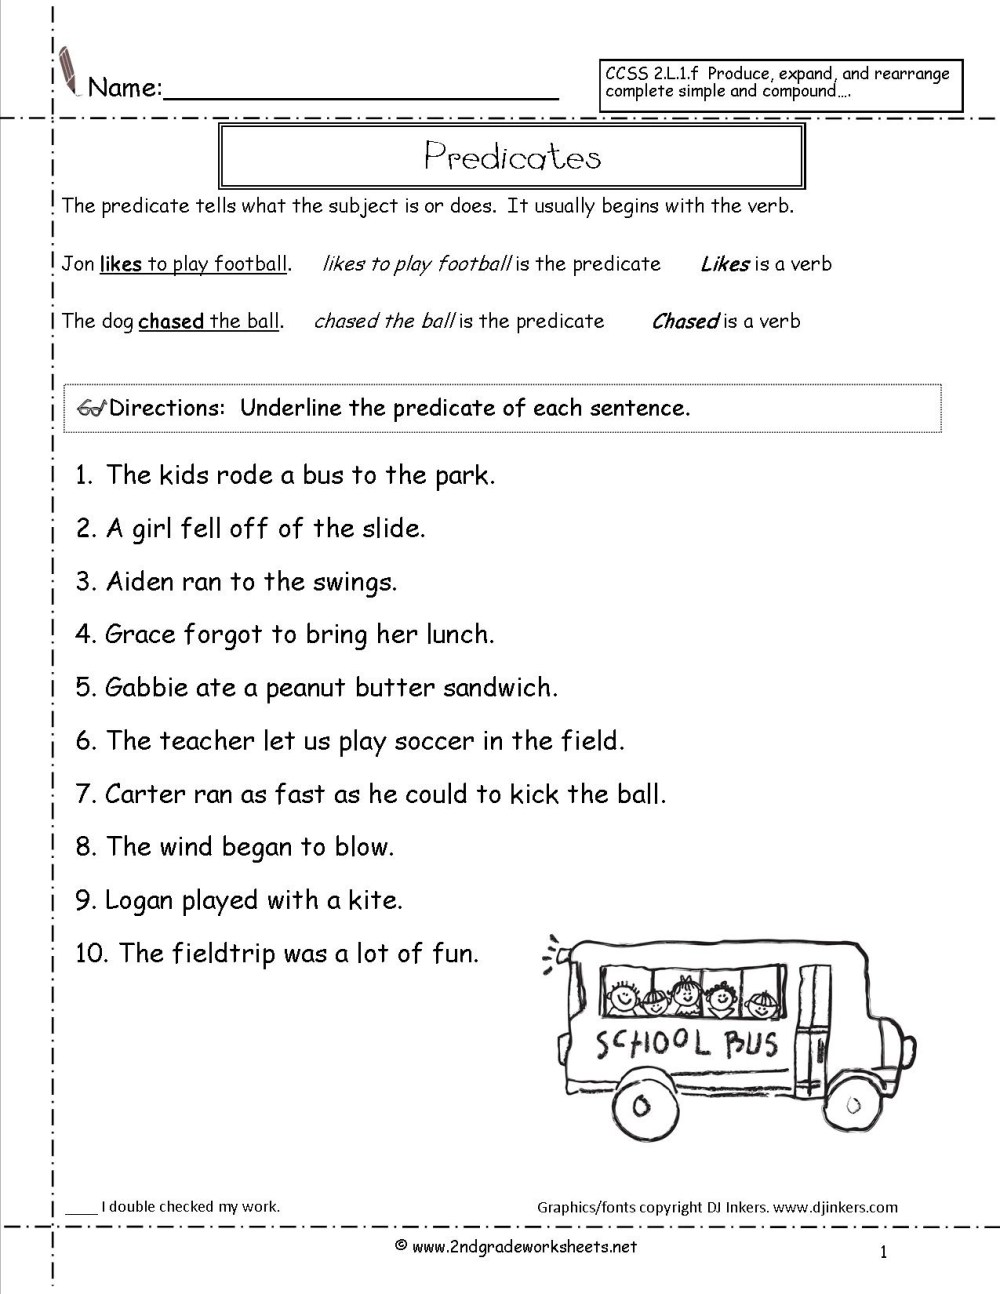 medium resolution of Second Grade Religion Worksheets   Printable Worksheets and Activities for  Teachers